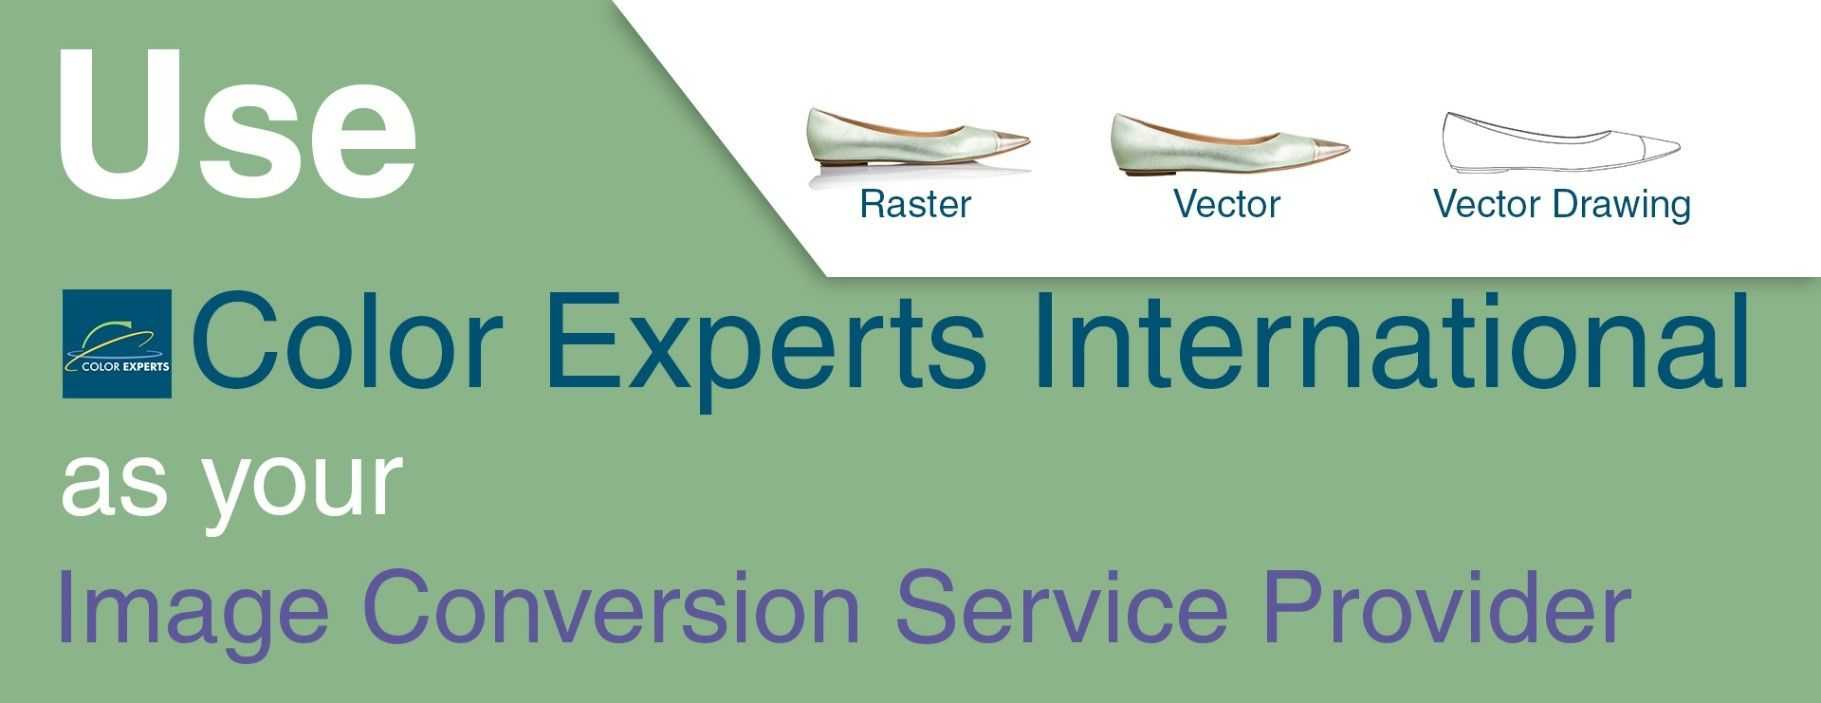 Use Color Experts International as your image conversion service